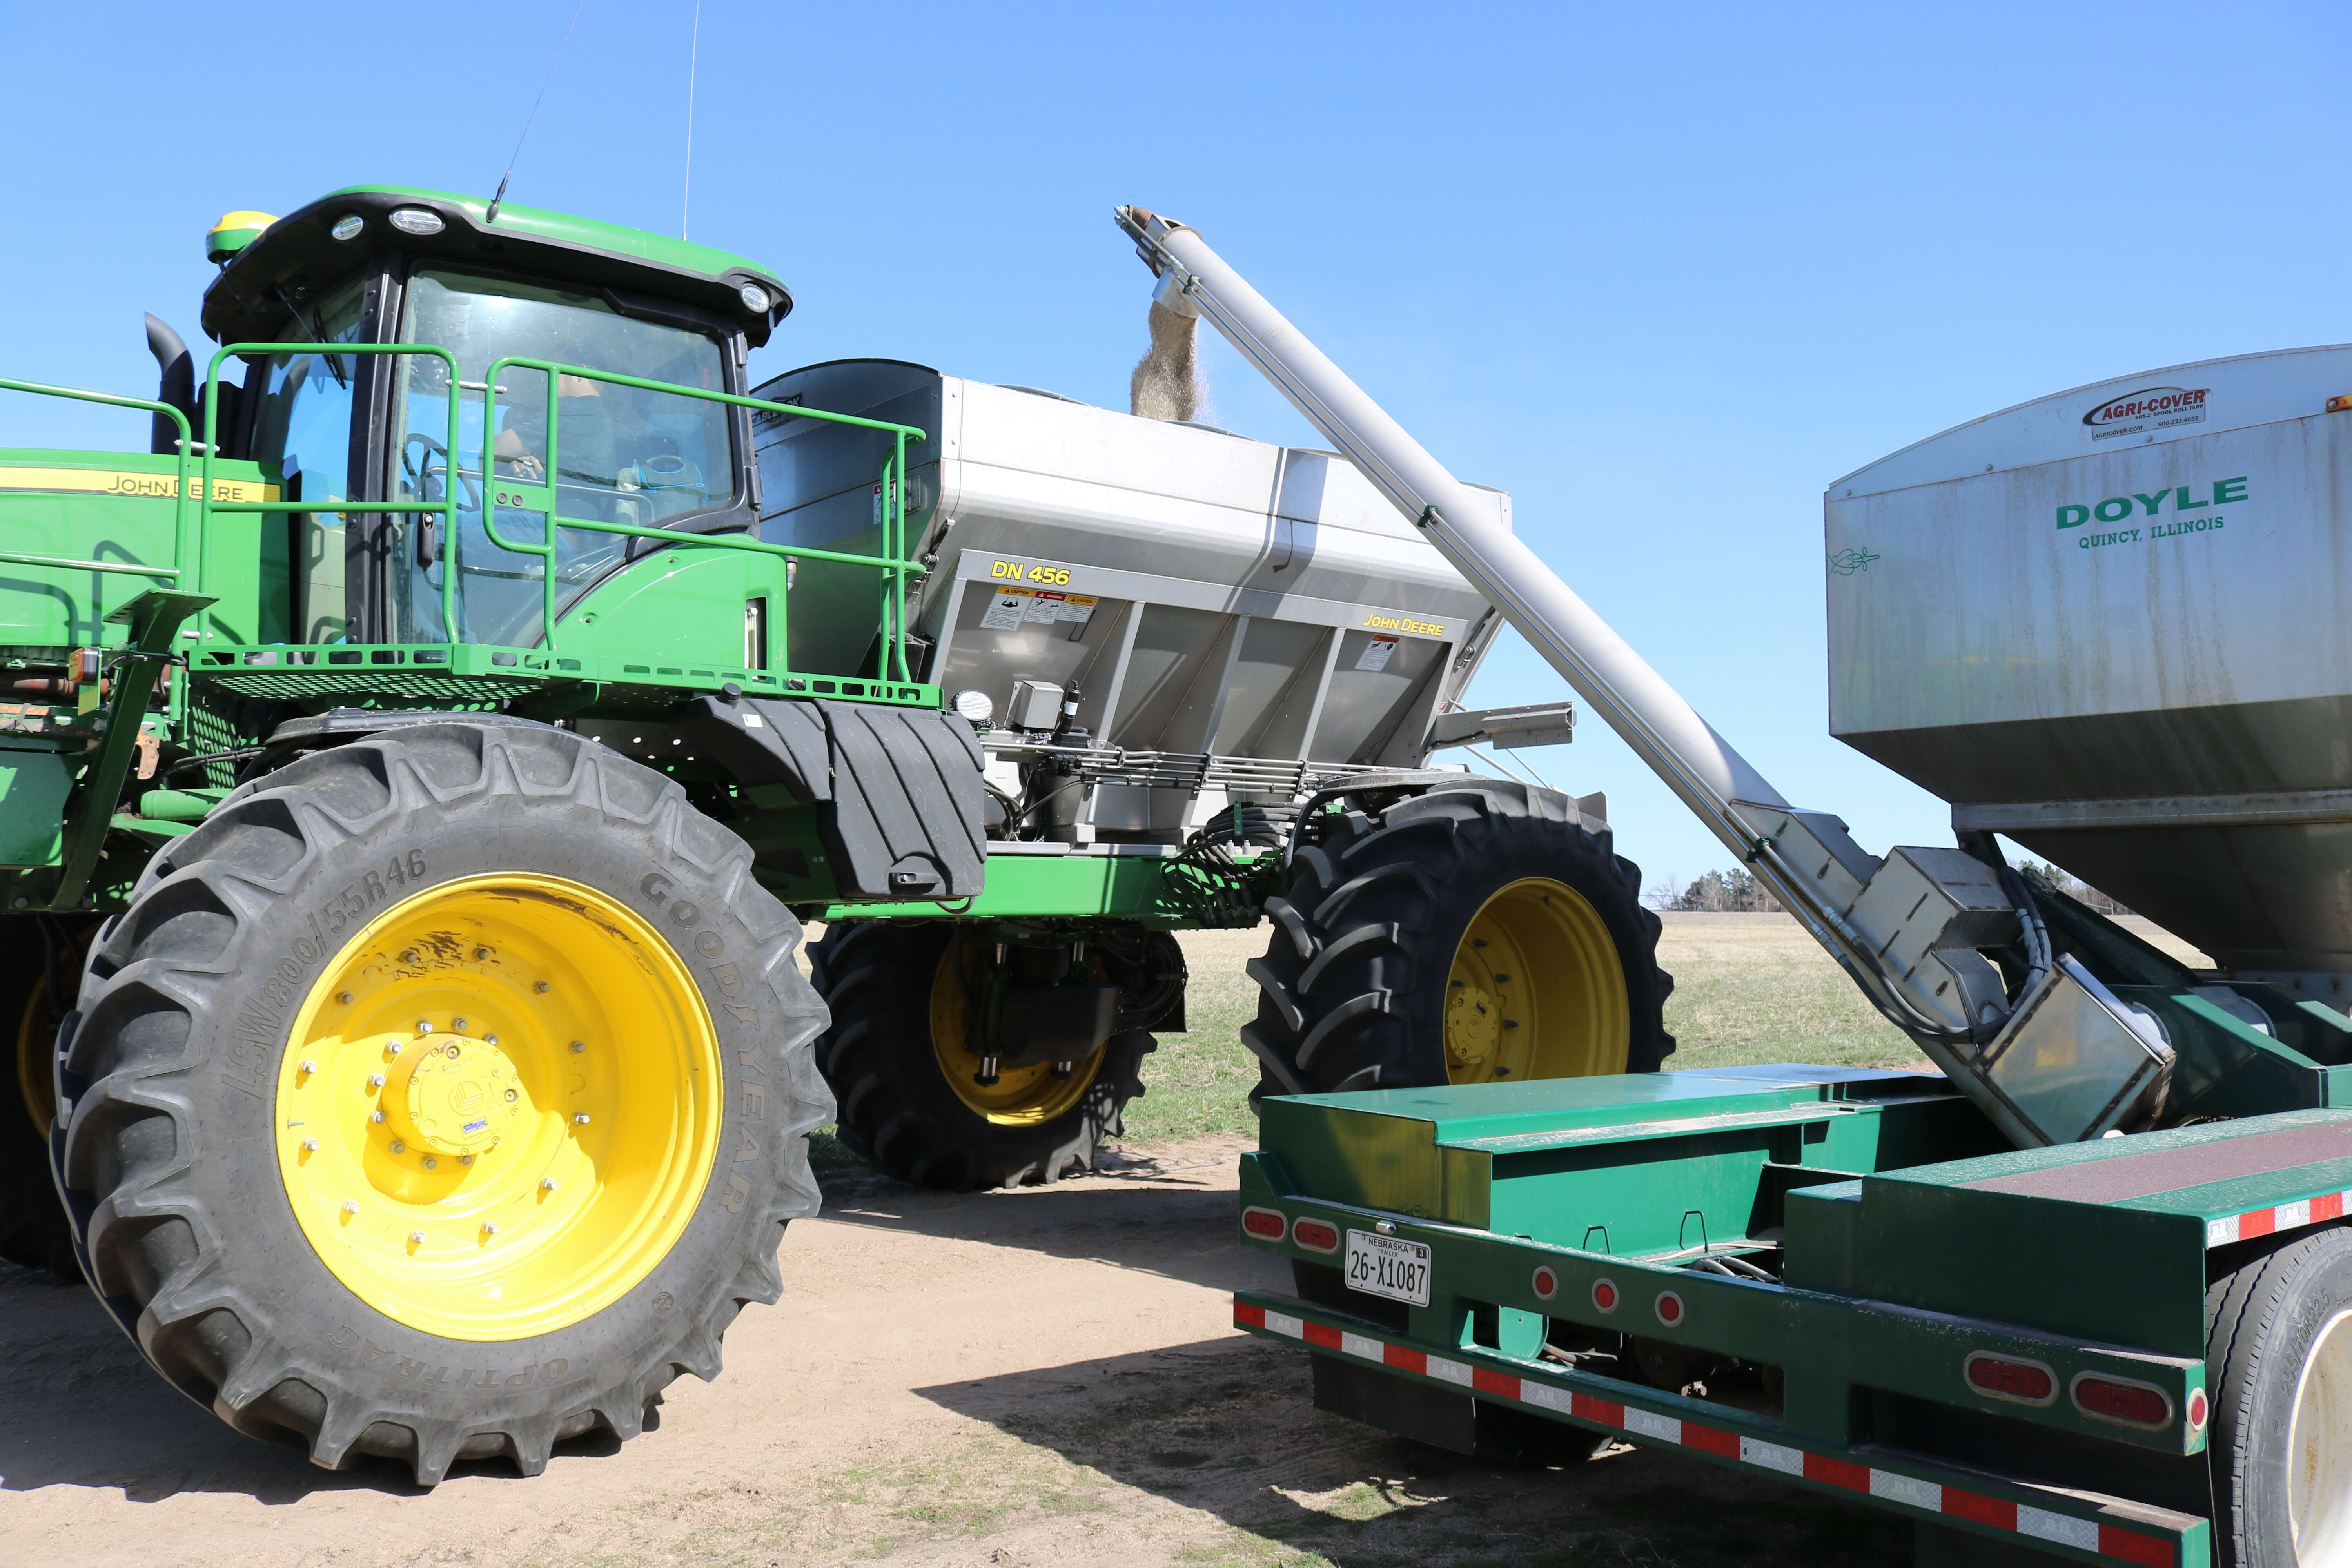 A green and silver Doyle truck is dispensing fertilizer into the back of a green John Deere tractor so it can go out into the field